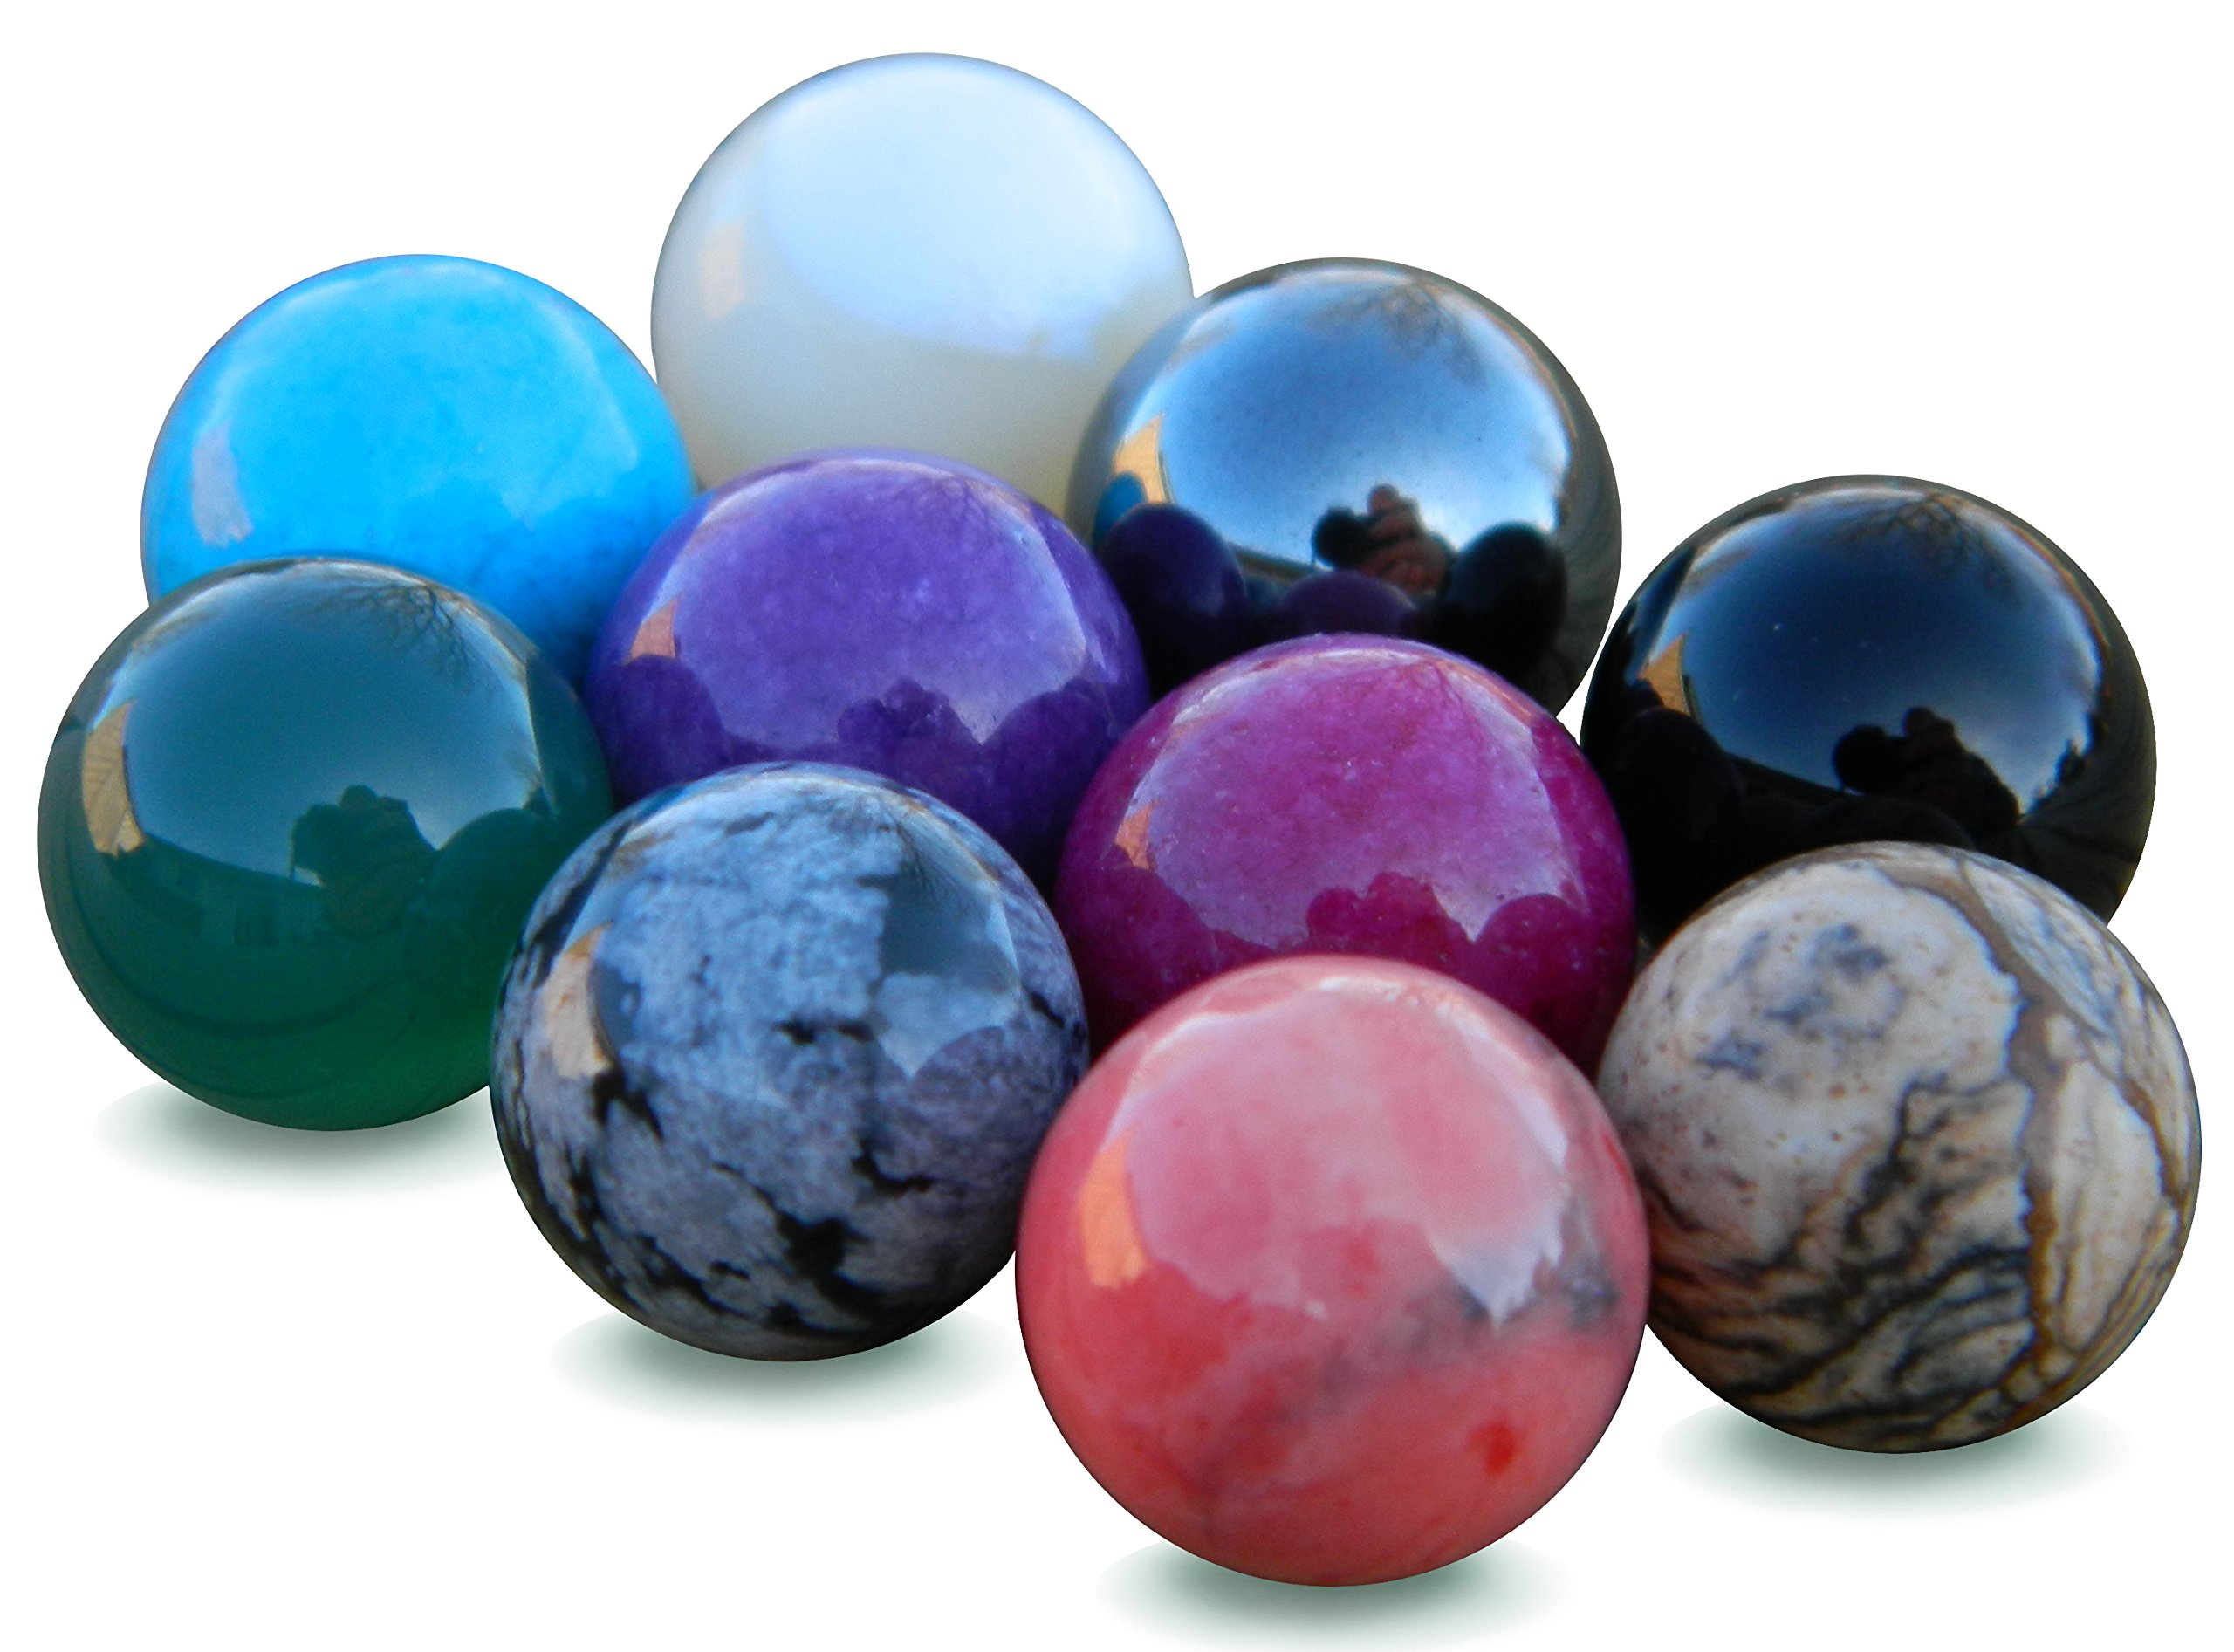 10mm Semi Precious Stones Marbles Balls Set by Trendy Stone Jewelry